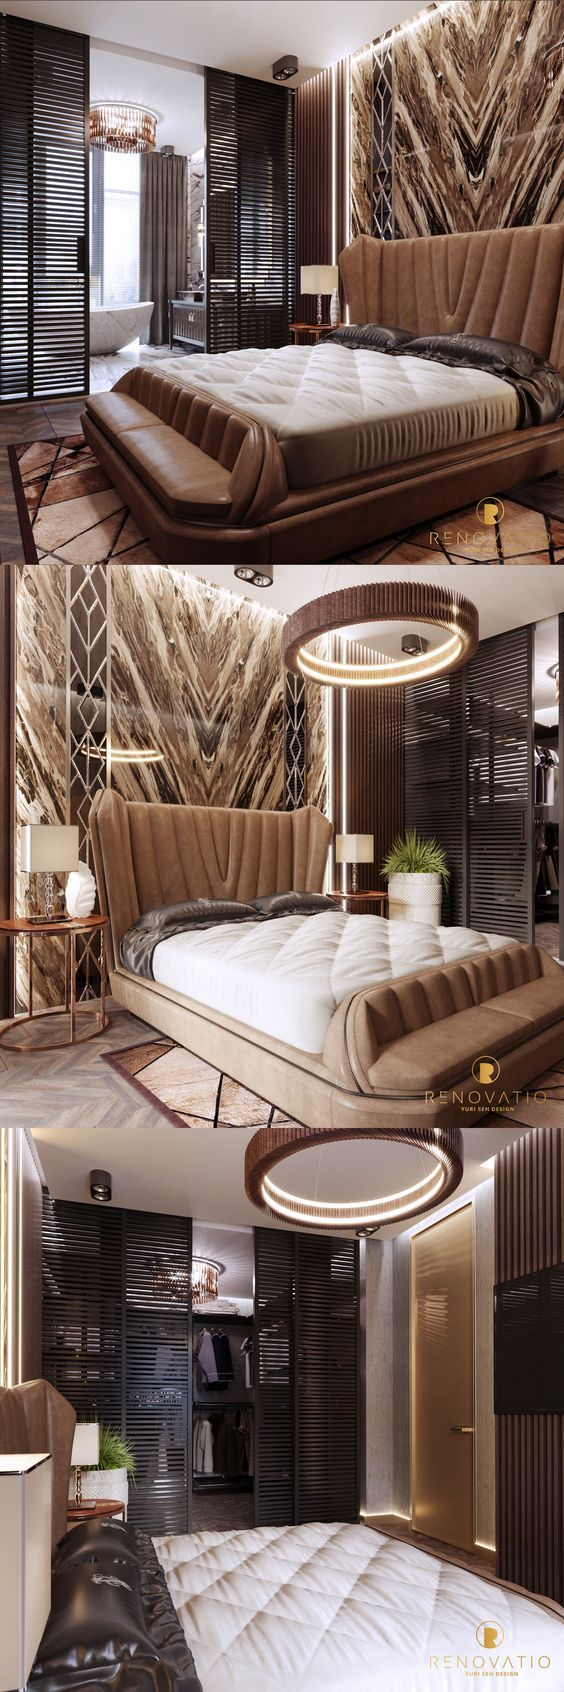 The best high-end bedroom design ideas, curated by Boca do Lobo to serve as inspiration for the modern interior designer. Master bedrooms, minimalistic bedrooms, luxury bedrooms and everything bedroom related with a variety of choices that will fit any modern, rustic or vintage home for a great nights sleep. #bocadolobo #luxuryfurniture #exclusivedesign #interiodesign #designideas #bestdesign #interiordesigners #interiors #bedroomsideas #luxurybedrooms